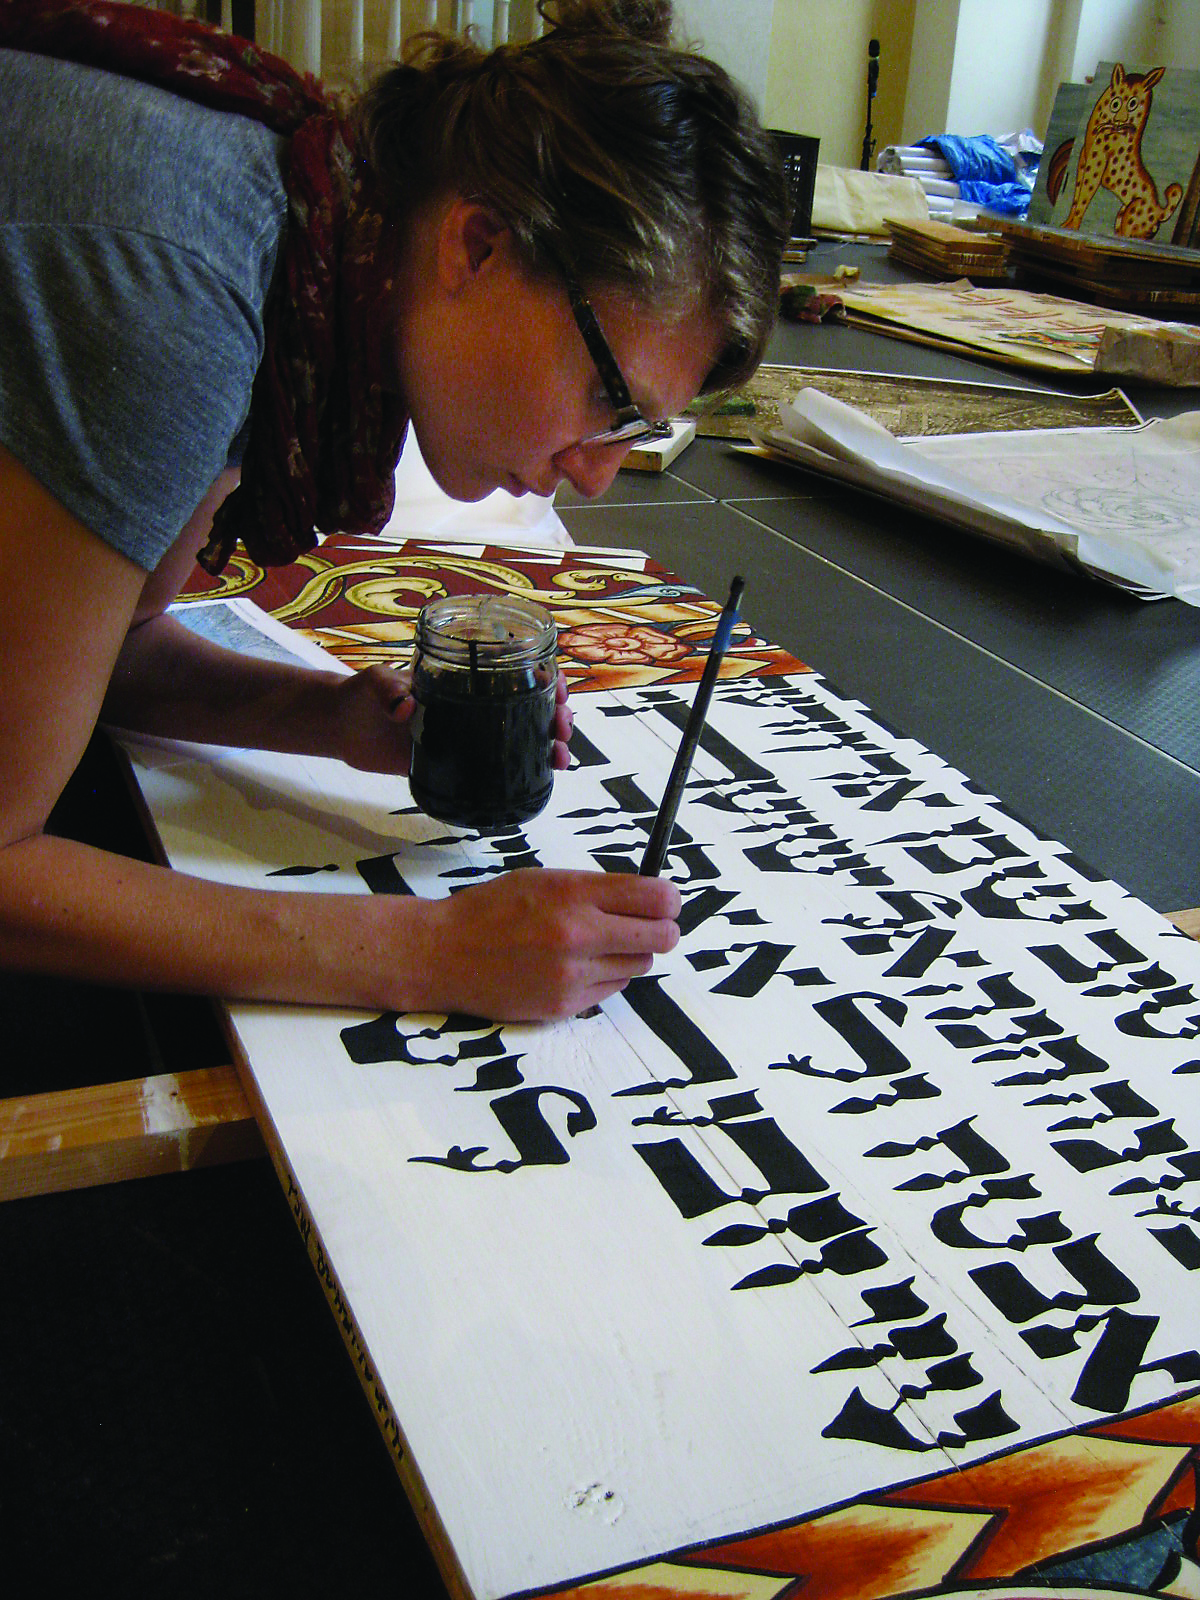 Ariel Rosenblum, who devoted many years of preparation to become the project's Hebrew calligraphy expert, paints the Hebrew text on a pendentive.